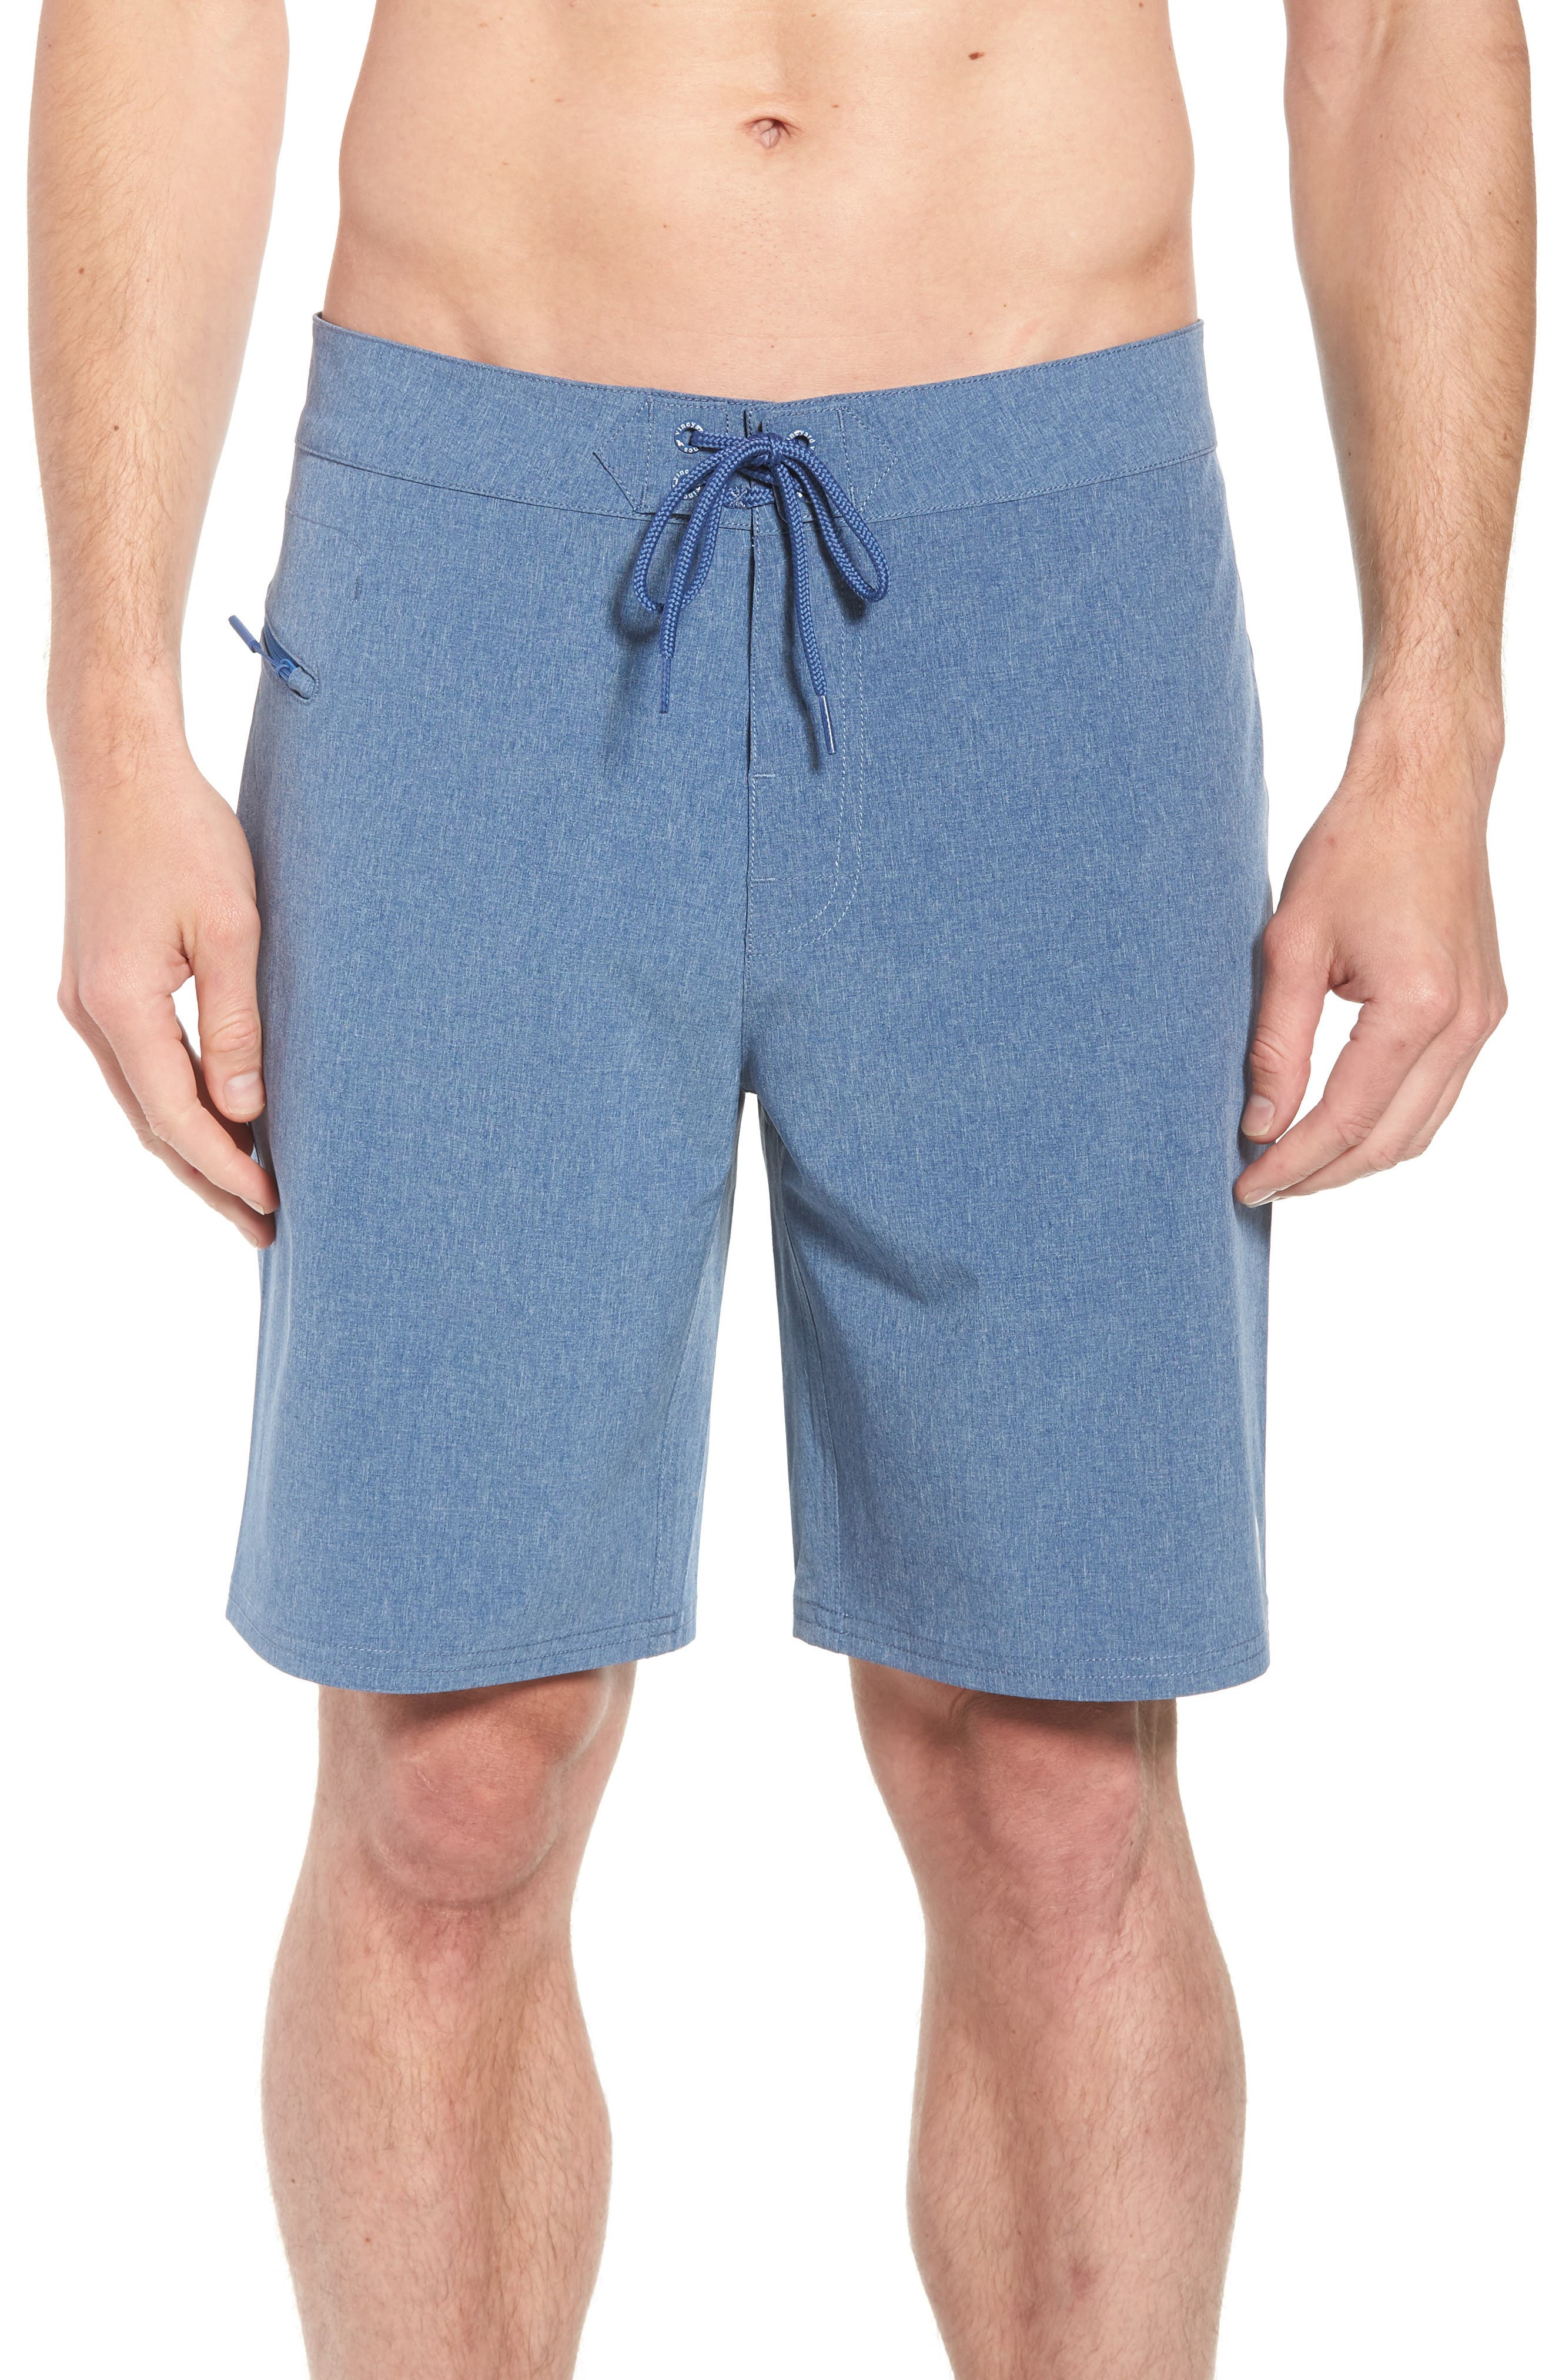 Heather Stretch Board Shorts,                             Main thumbnail 1, color,                             Moonshine